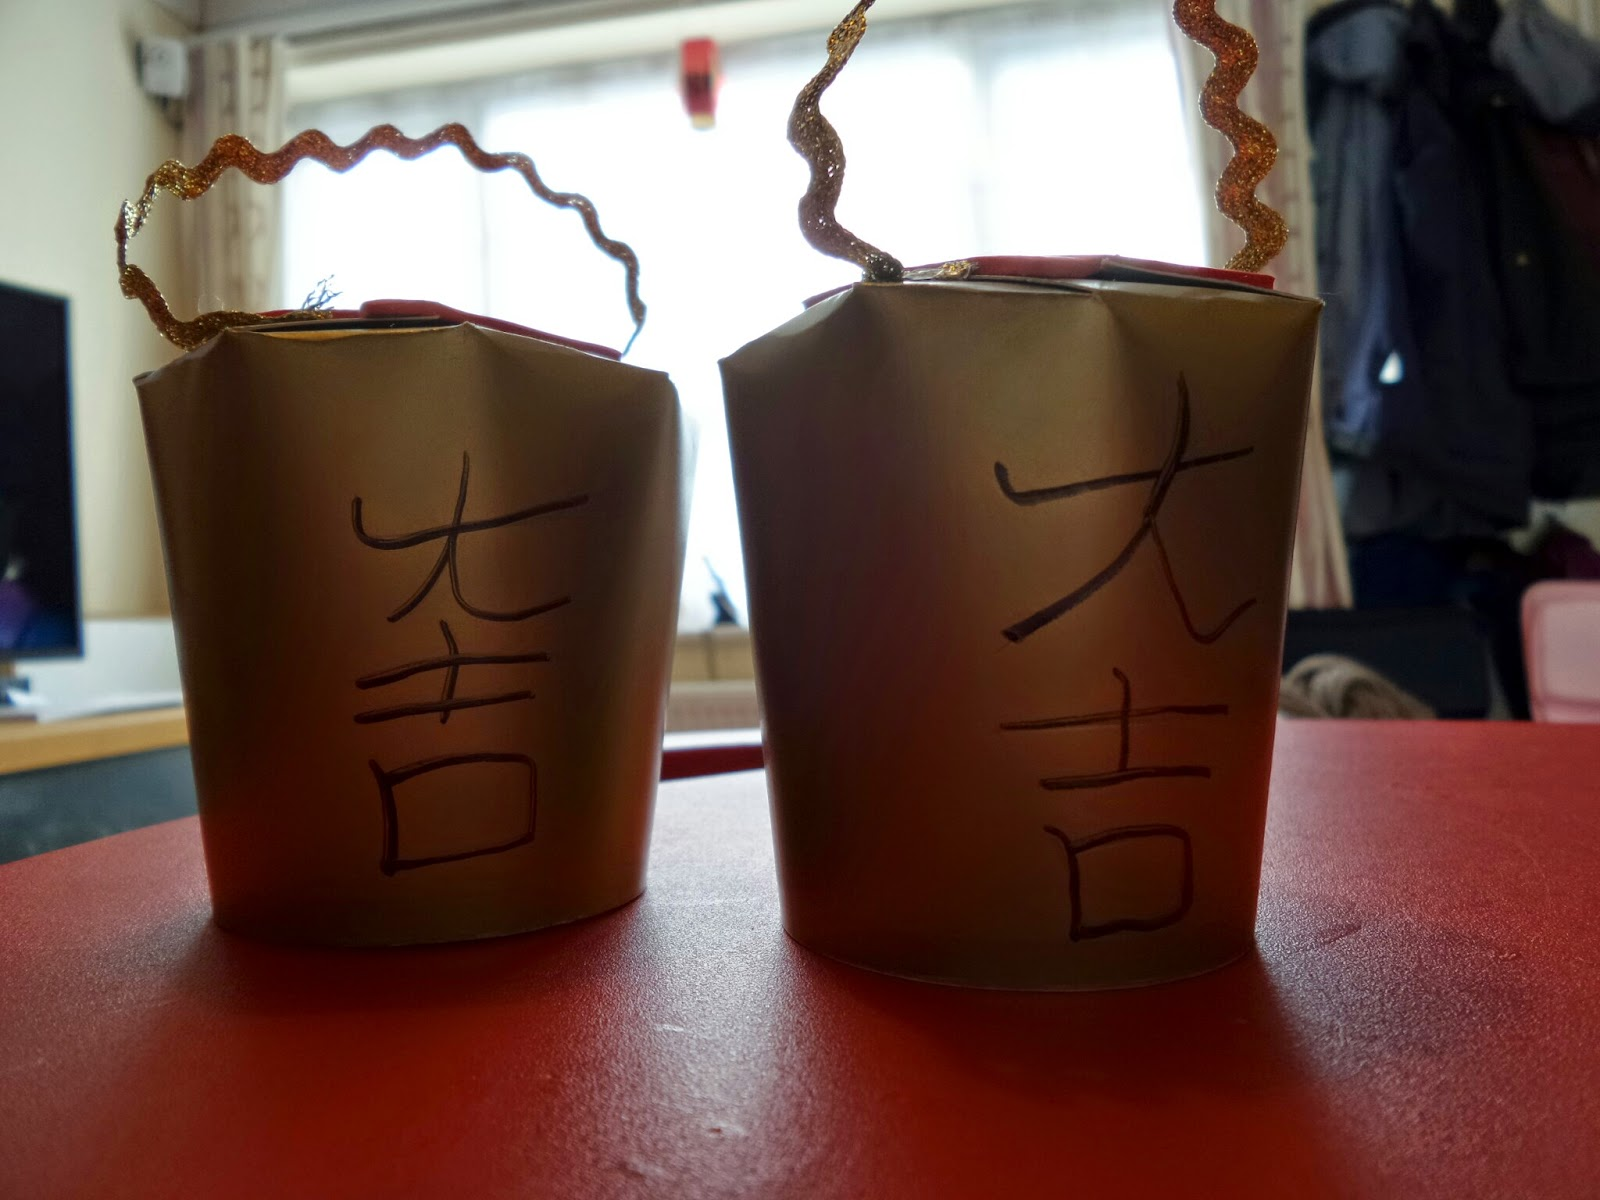 A Chinese Money Cup with Good Fortune written on it